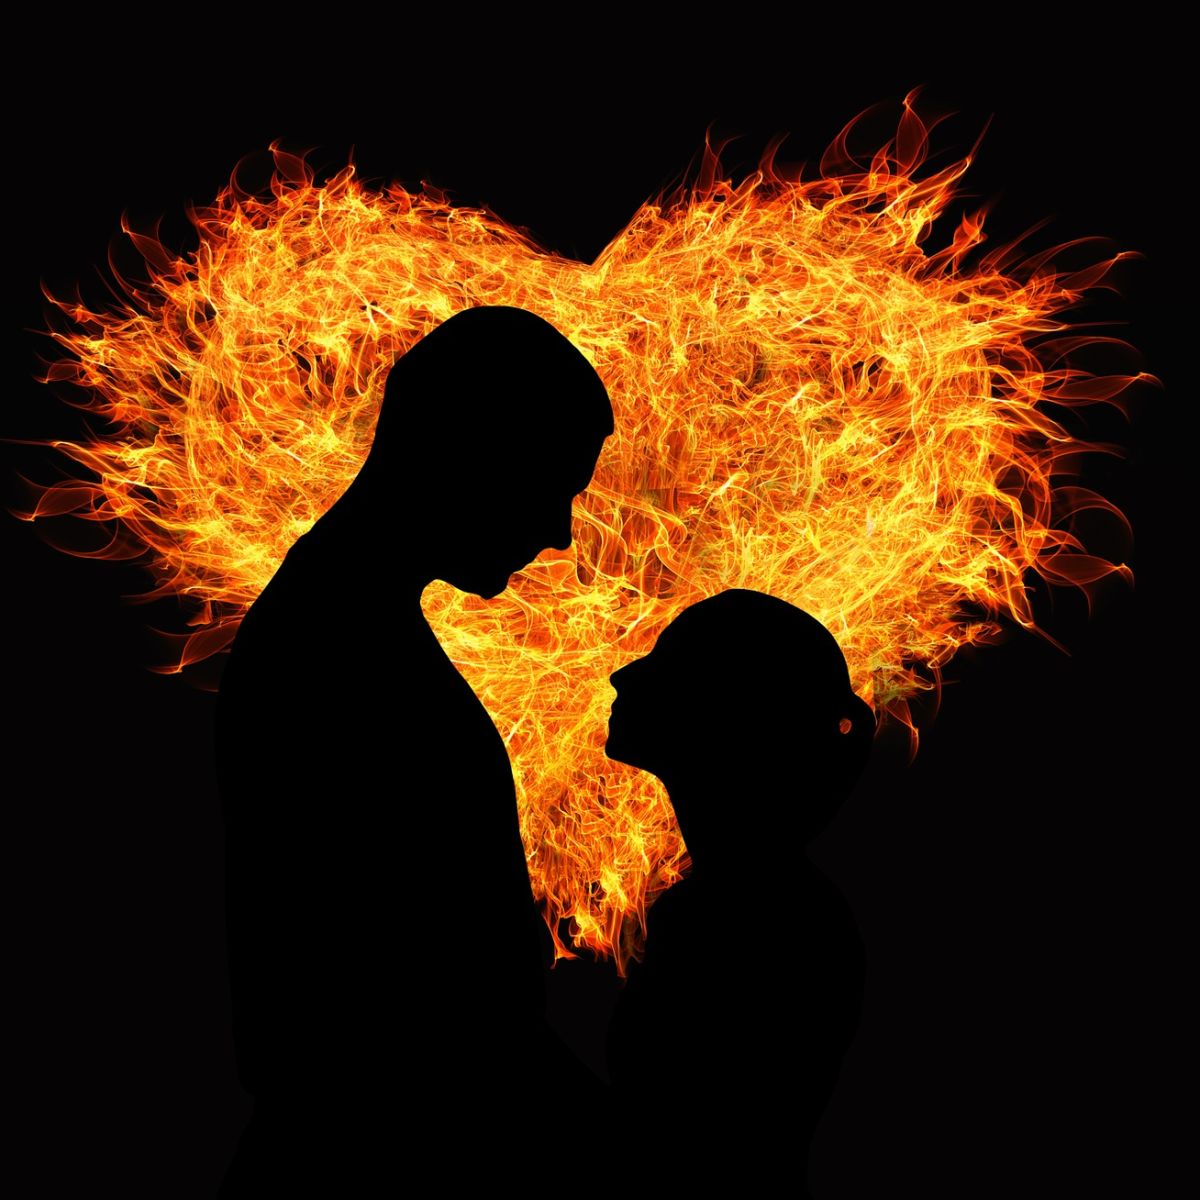 Heart of flames: Lovers in hot love